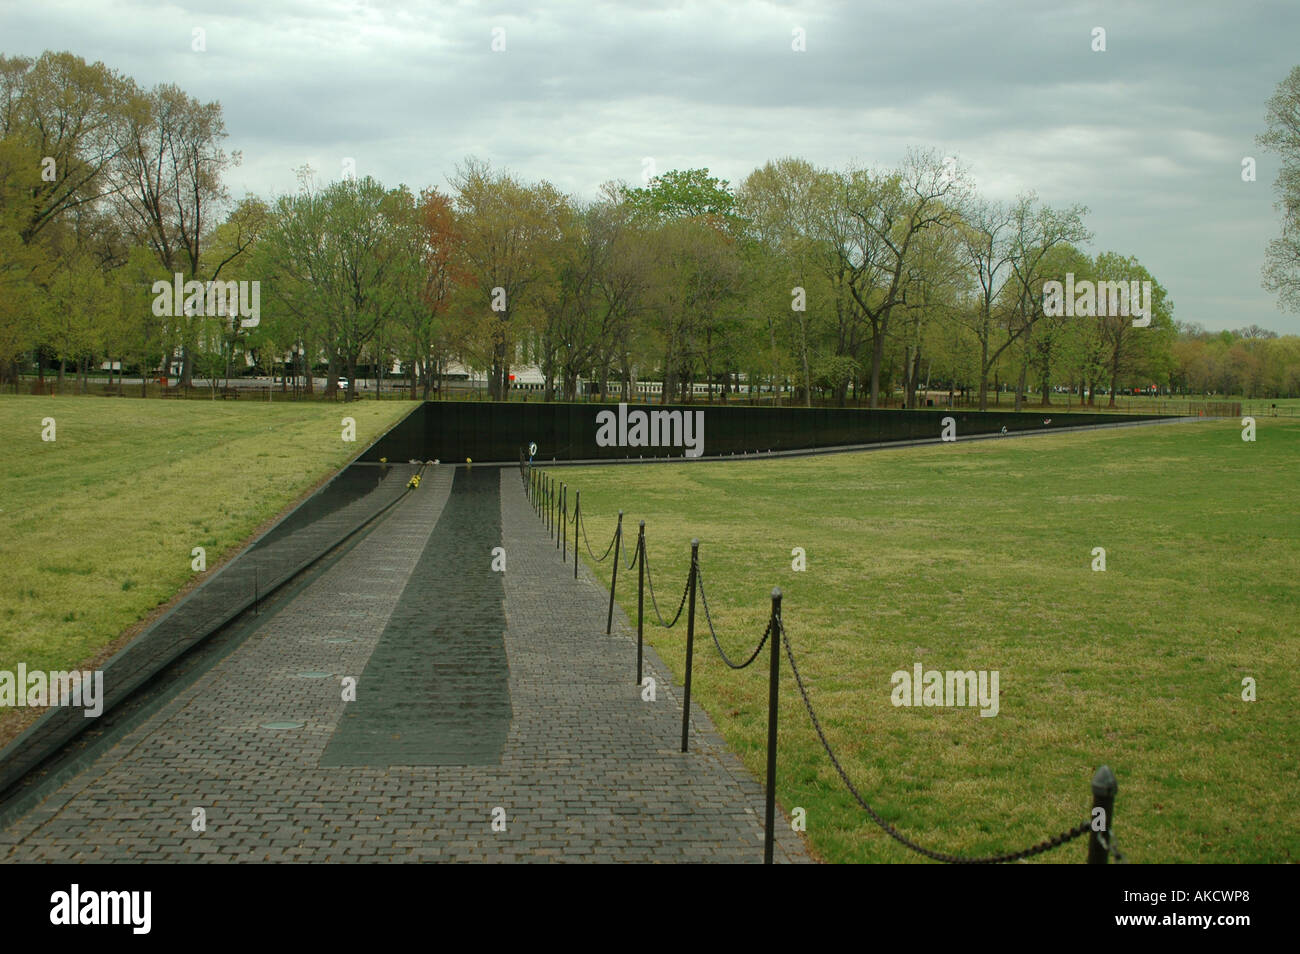 WASHINGTON DC MAYA LIN DESIGNED THE VIETNAM VETERANS MEMORIAL KNOW AS THE  WALL WASHINTON DC